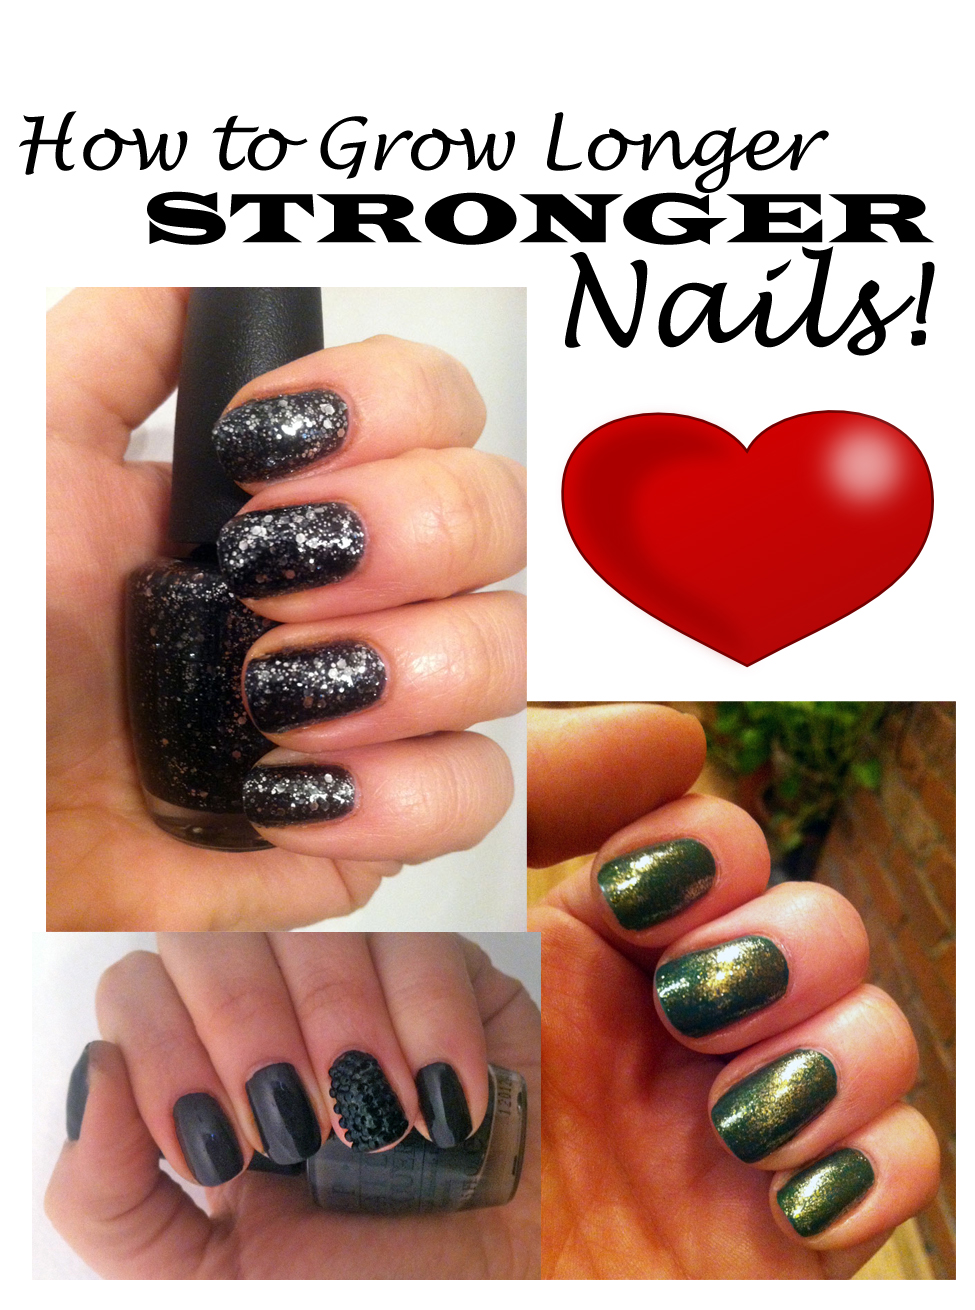 How To Grow Long Healthy Nails   Makeup & Beauty Tips, Tricks ...